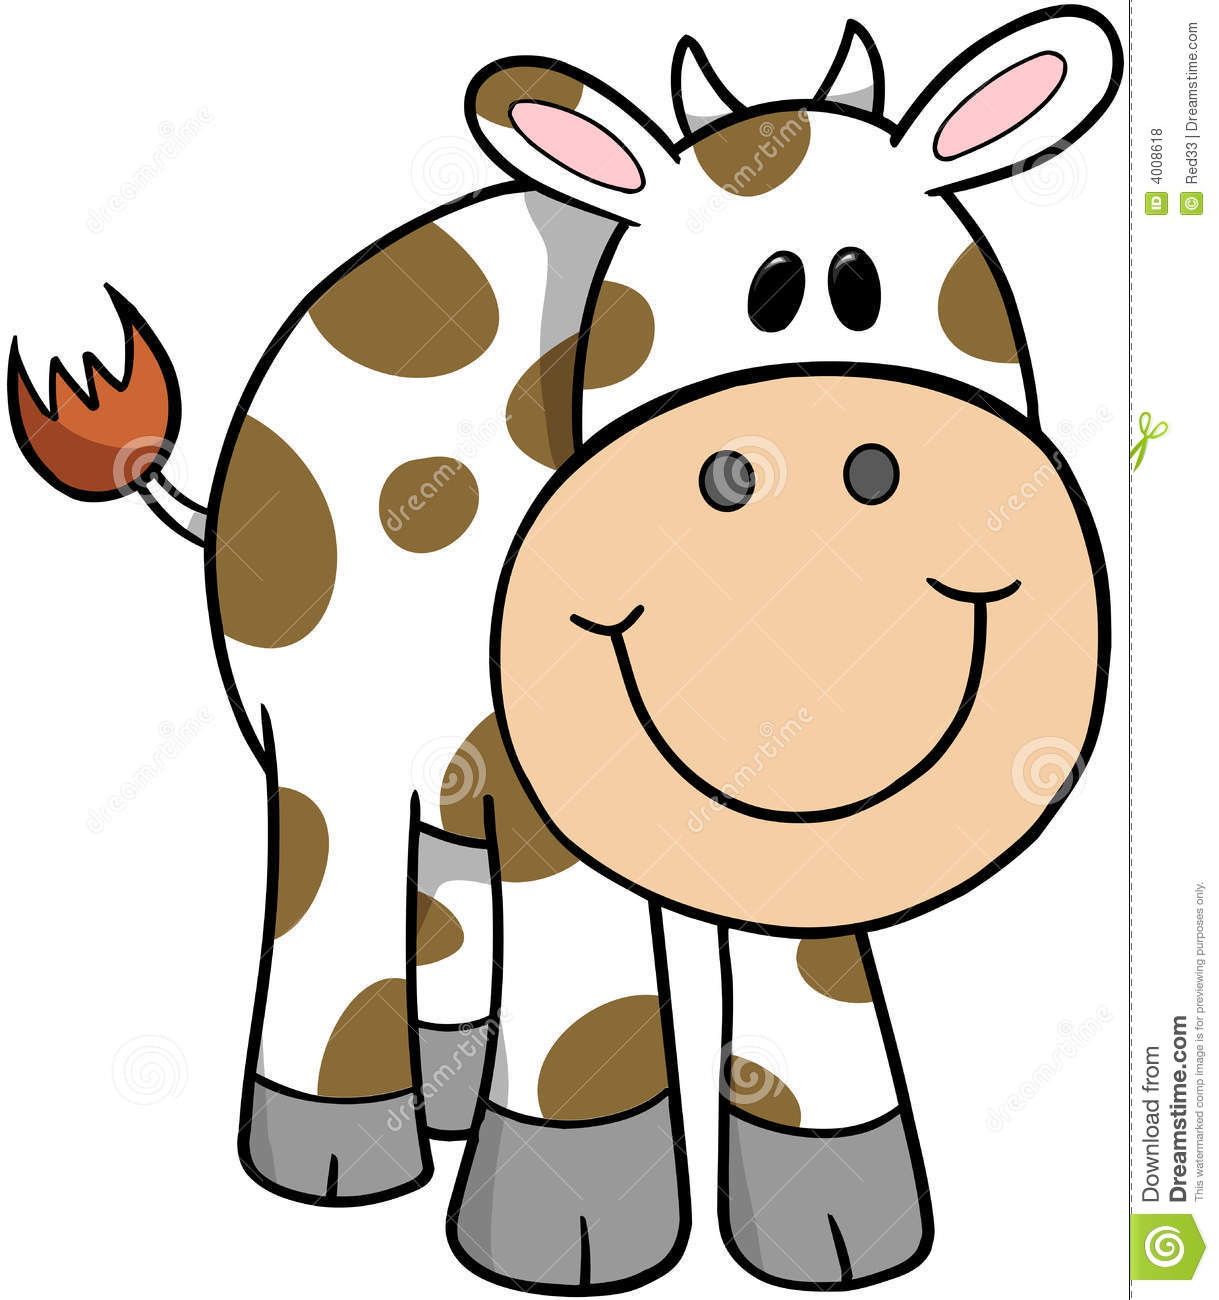 Cow Vector Illustration Royalty Free Stock Photos - Image: 4008618